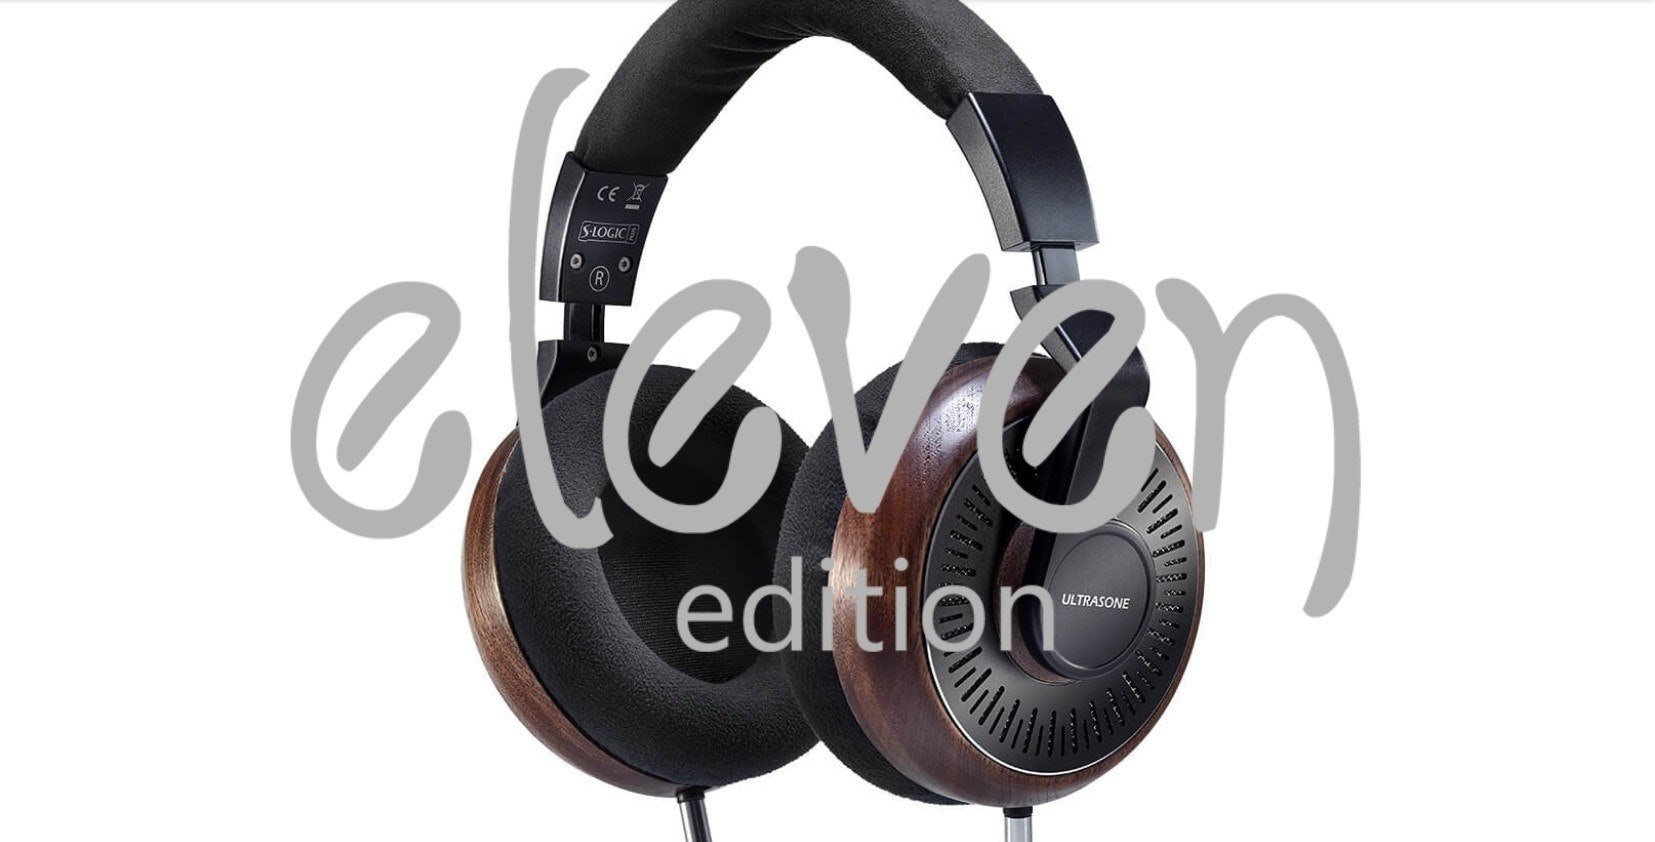 Headphones, Product design, Headset, Product, Audio, Design, headphones, headphones, technology, audio equipment, electronic device, audio, headset, product, product